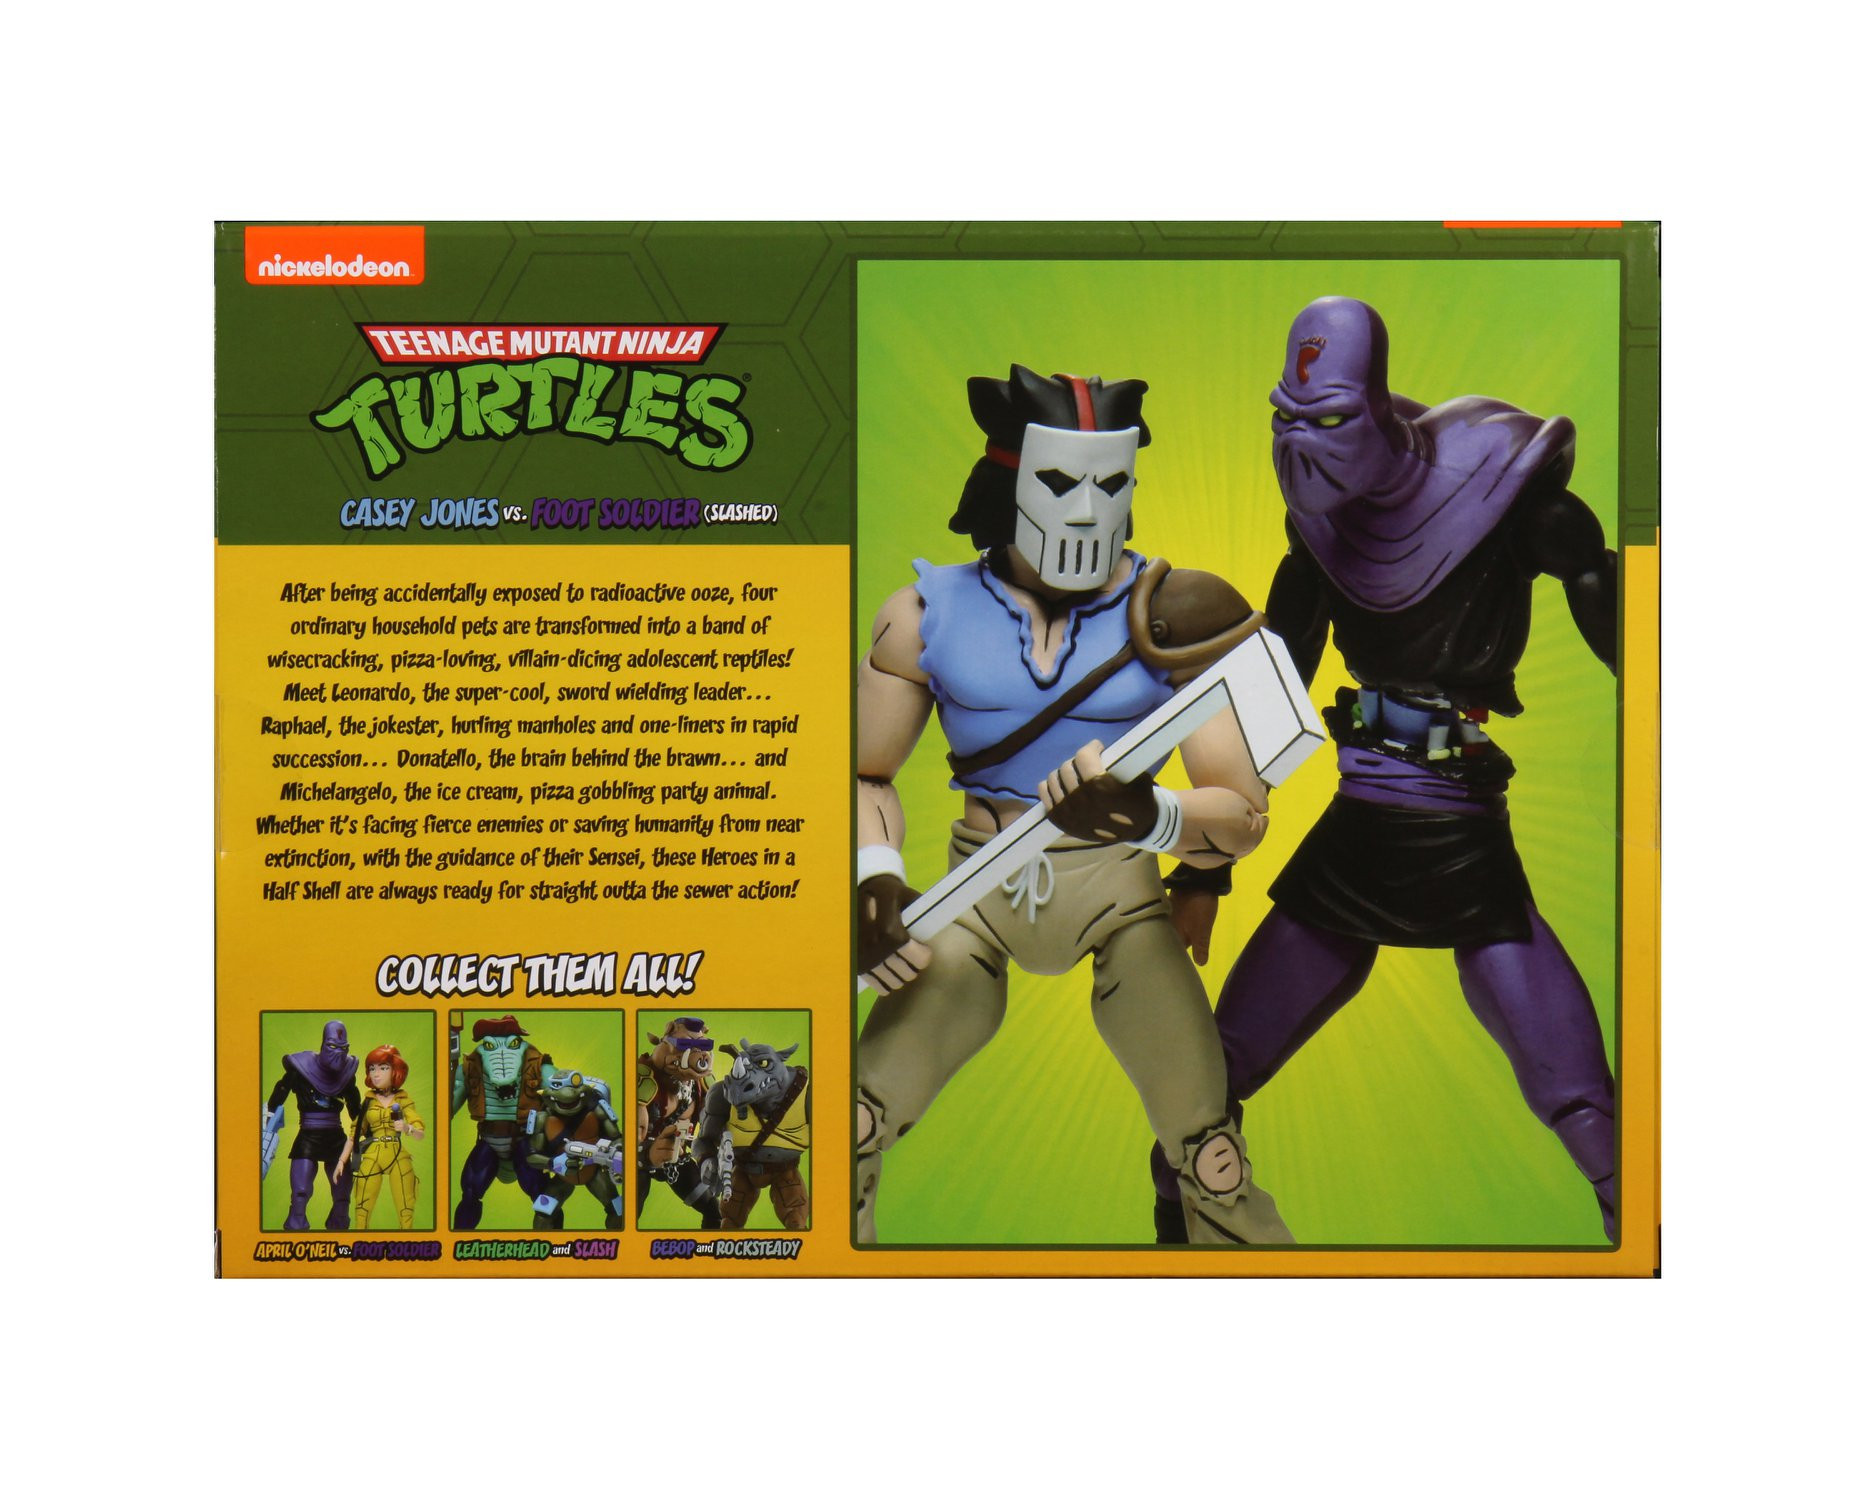 CASEY JONES FOOT SOLDIER Cartoon 2-Pack Teenage Ninja Turtles TMNT figurine Neca